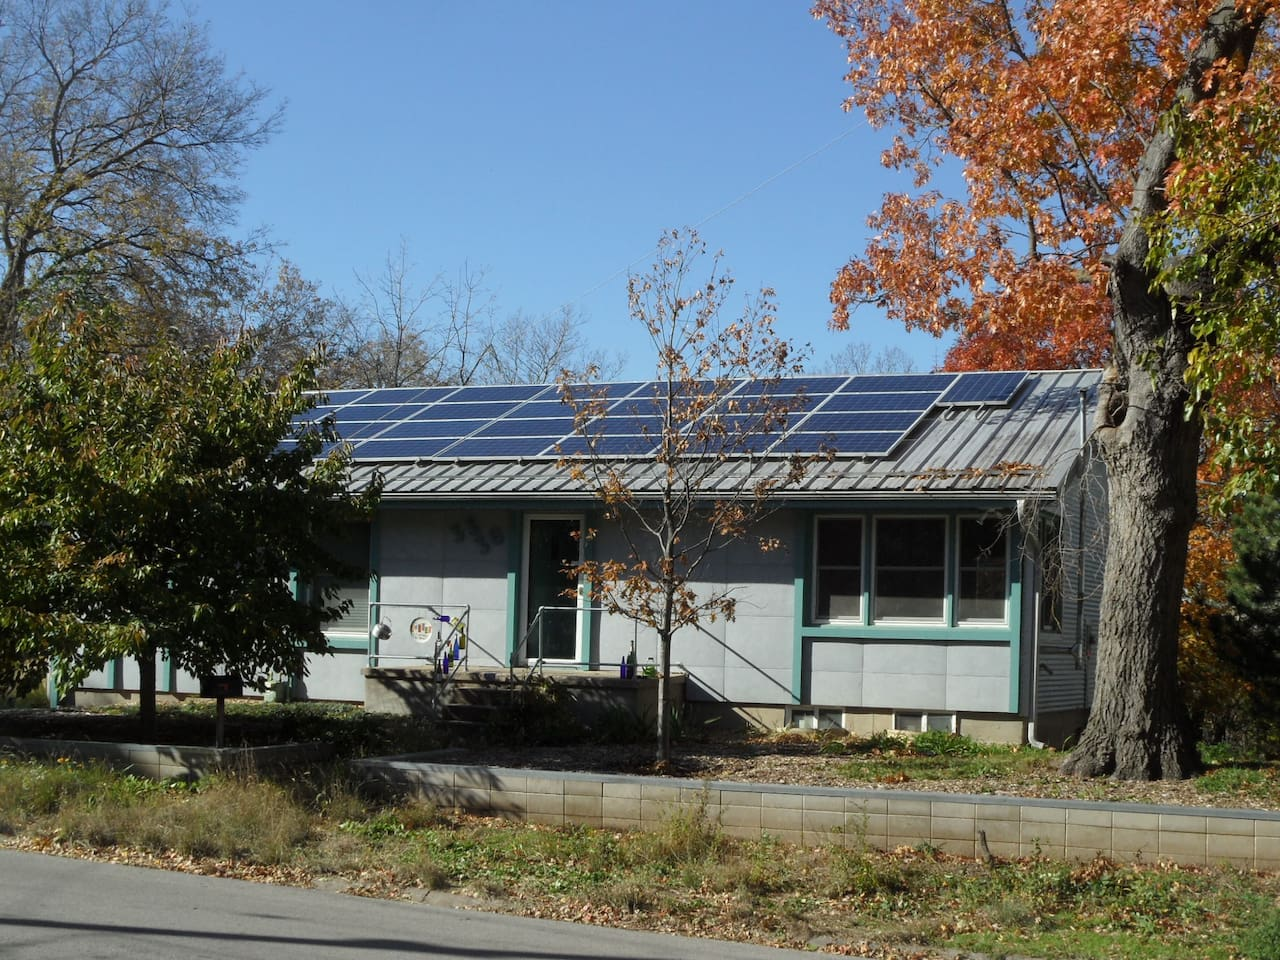 New solar panels will provide most of  my electricity.